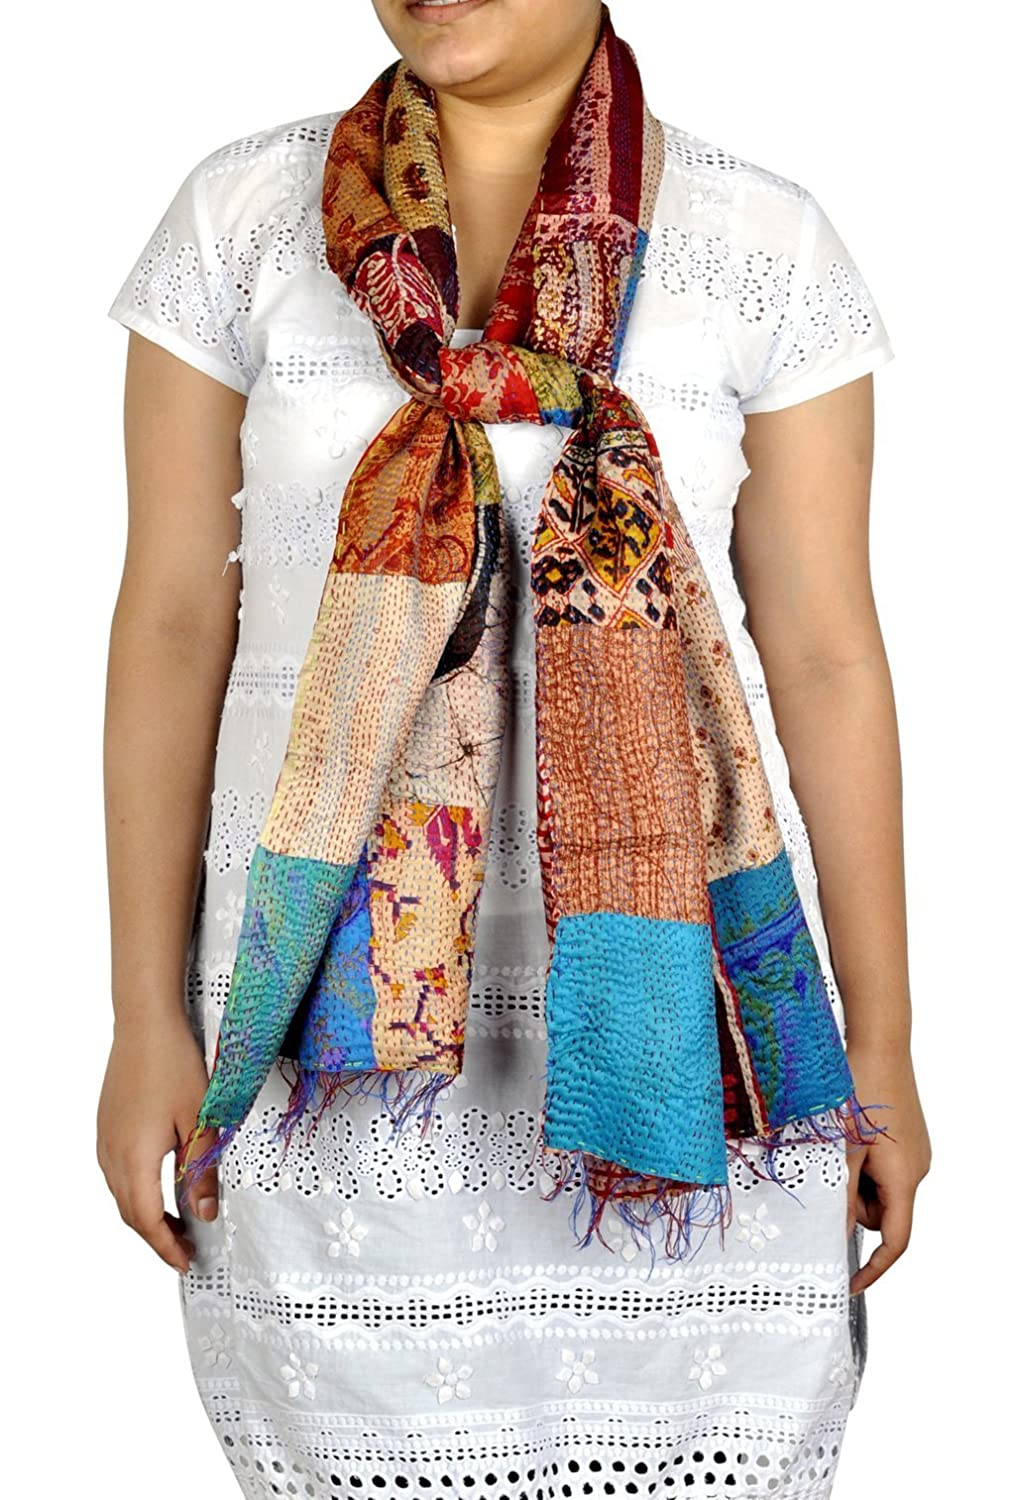 Indian Art Work Design New Charming Girls Scarve Shawl